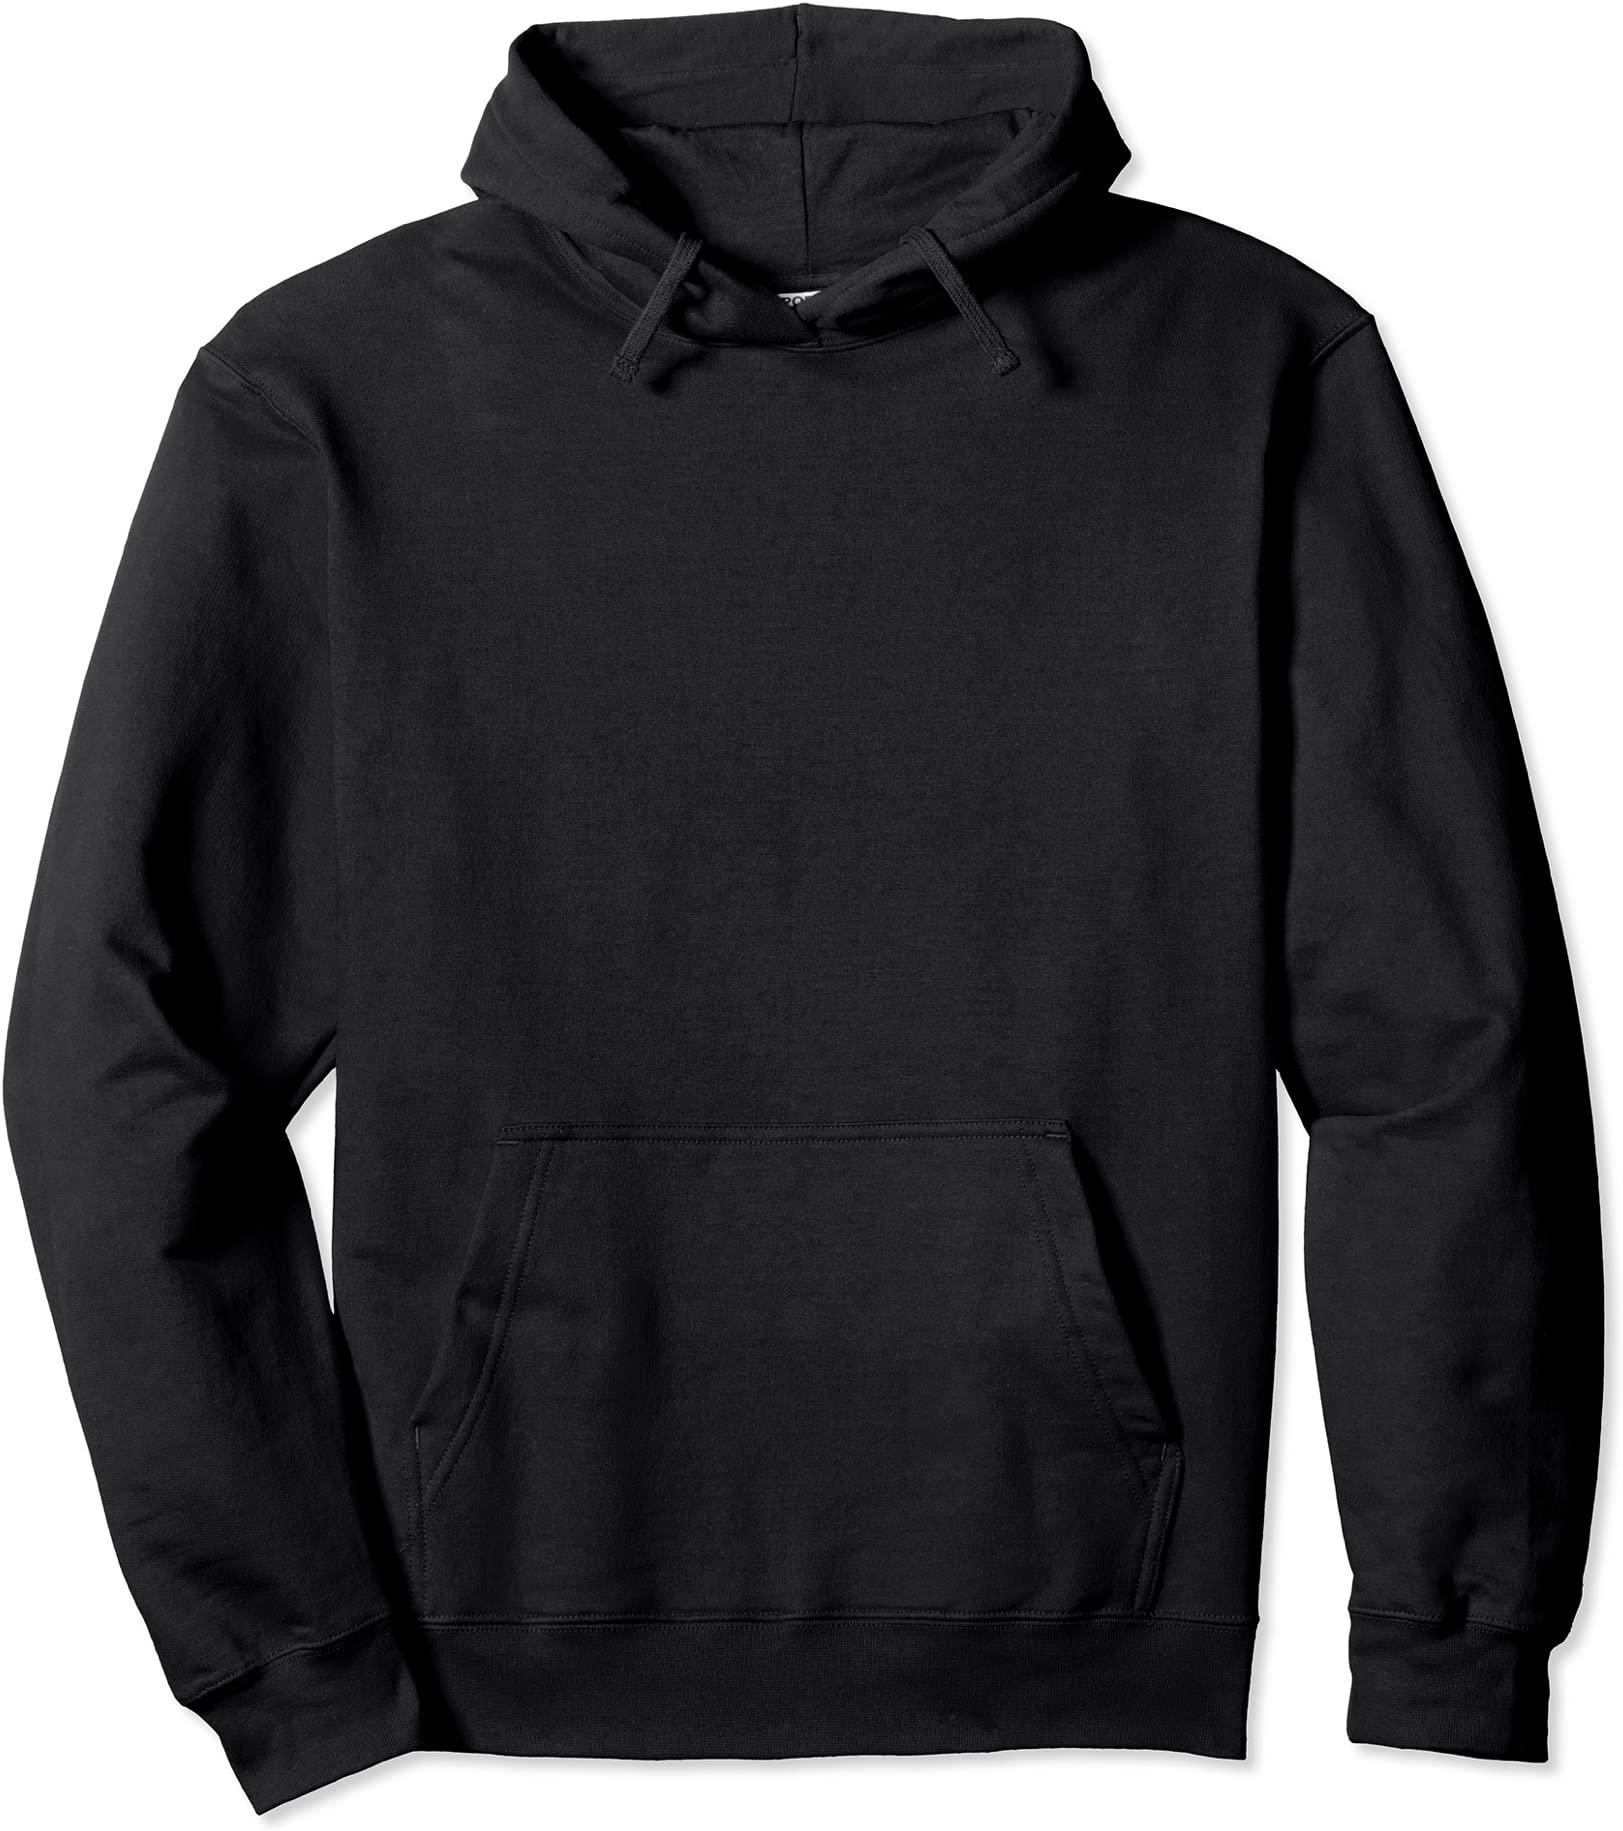 Meet The Robinsons Design Mens Fashion Hooded Sweater Popular Style Design